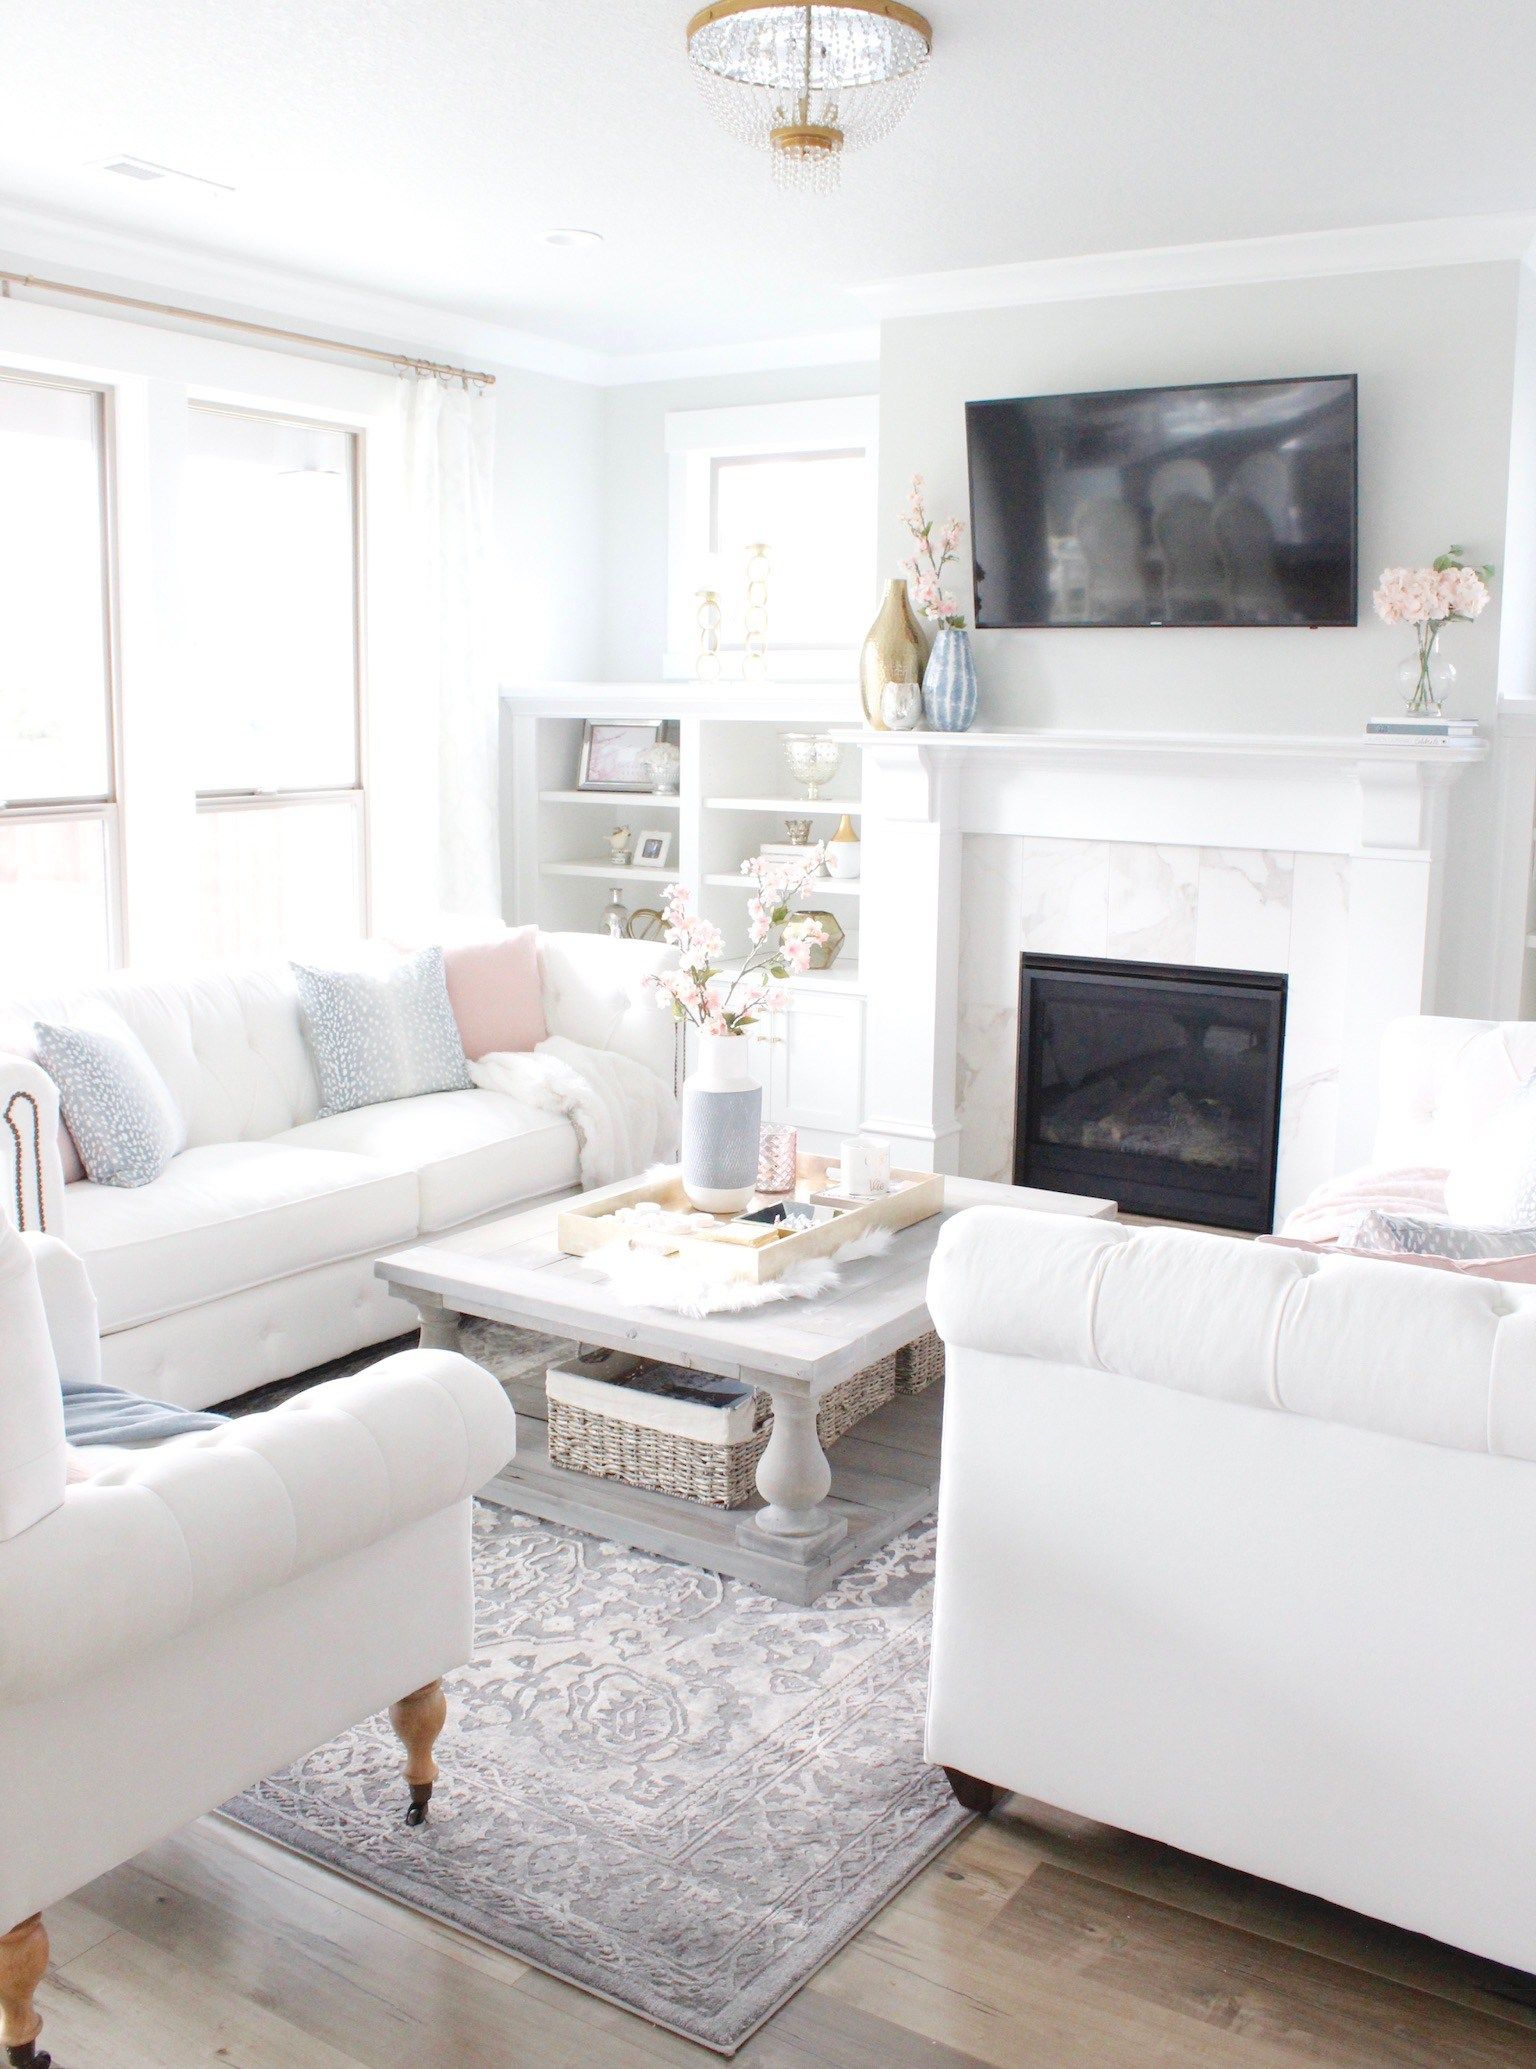 feature friday summer adams designs for the home decor house rh pinterest com